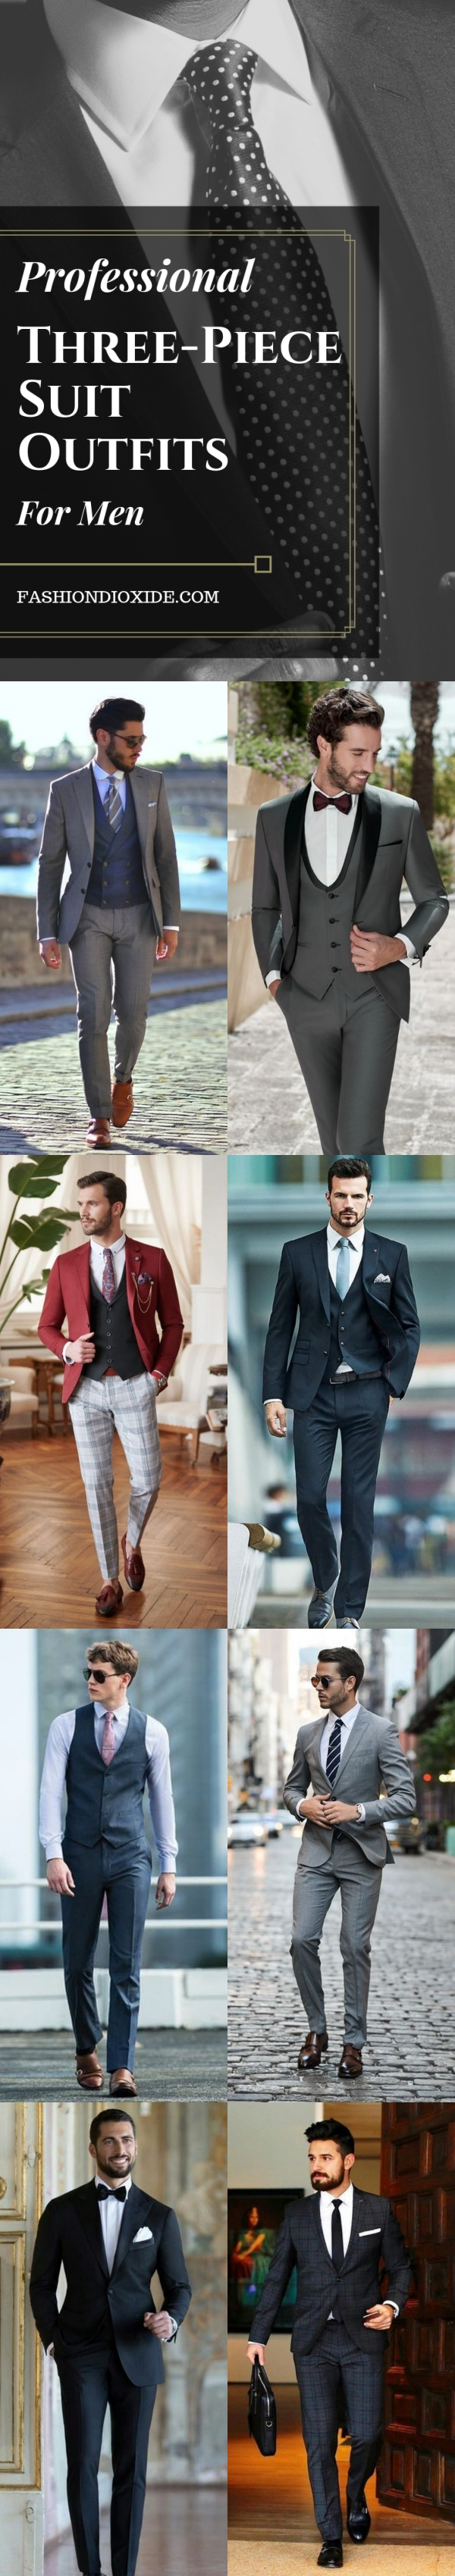 Professional Three-Piece Suit Outfits For Men